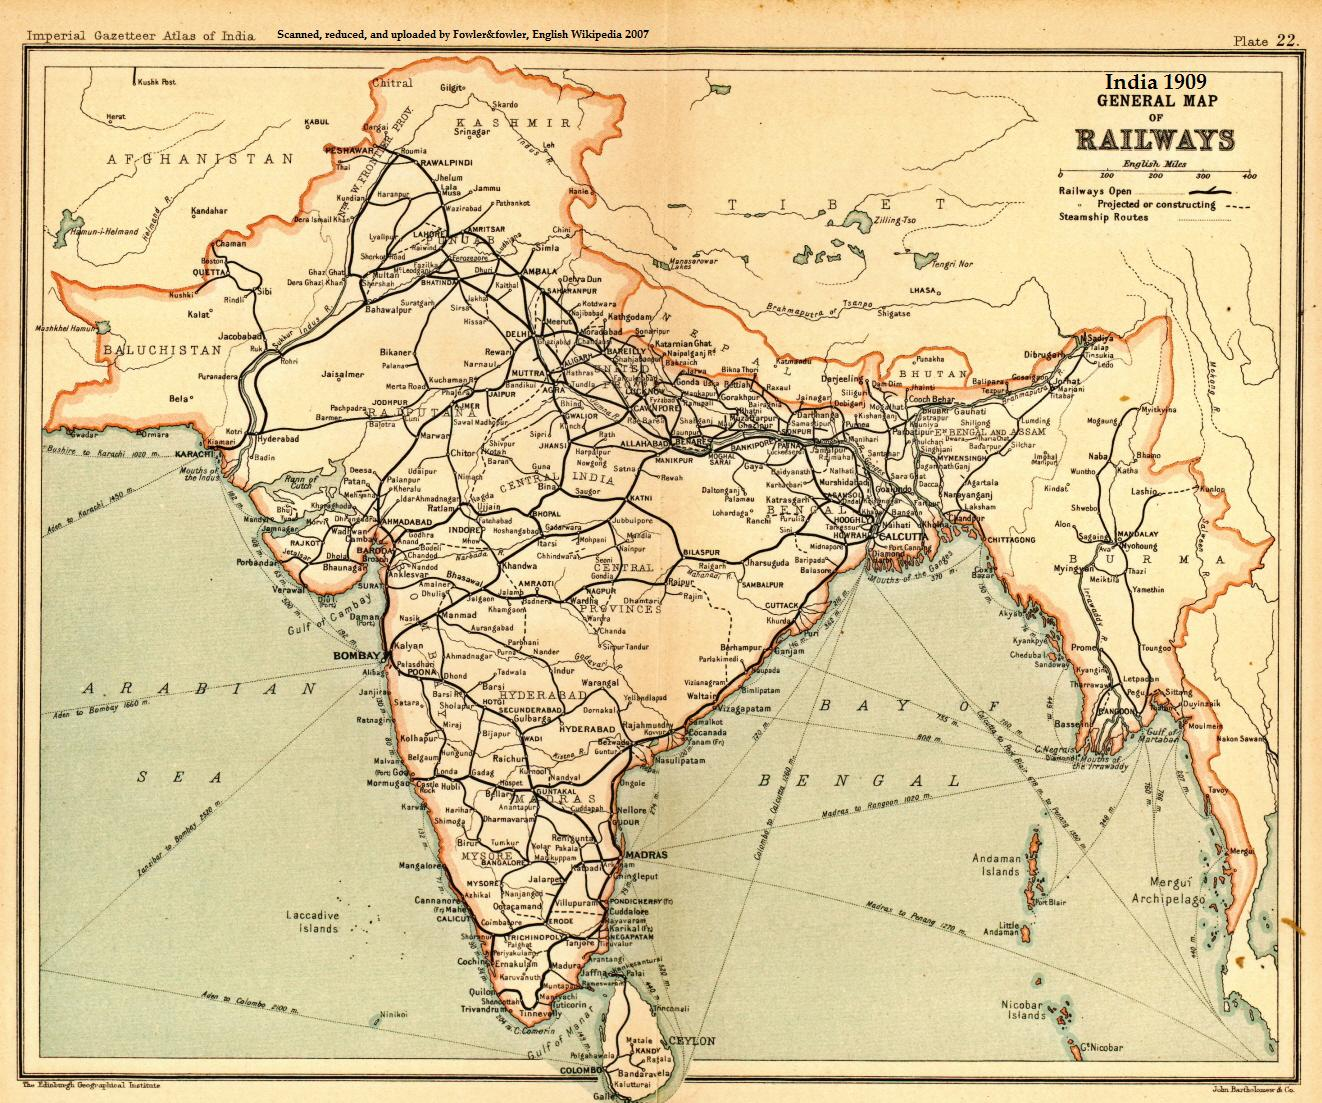 File:India railways1909a.jpg - Wikimedia Commons on india water map, india world map, india industrial map, india high speed rail map, india agriculture map, india seaport map, india river map, india military map, india government map, india railway system, india automotive map, india airport map, benares india map, british india map, india gas pipeline map, india republic map, poona india map, india aviation map, india refinery map,